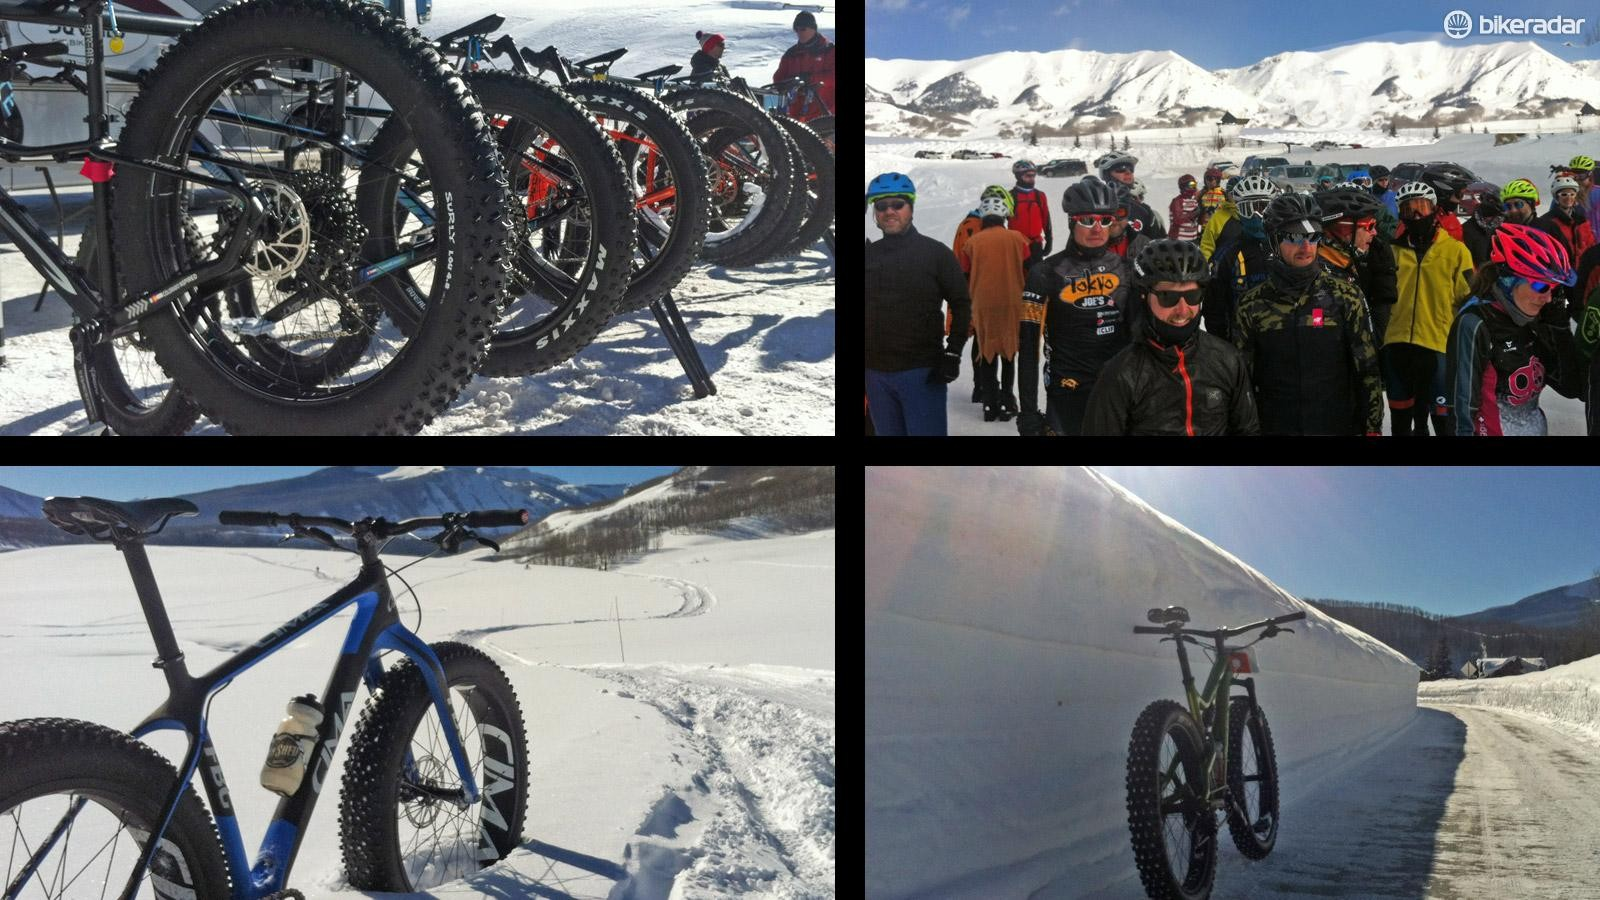 It was seriously chilly at the unofficial fat bike World Champs